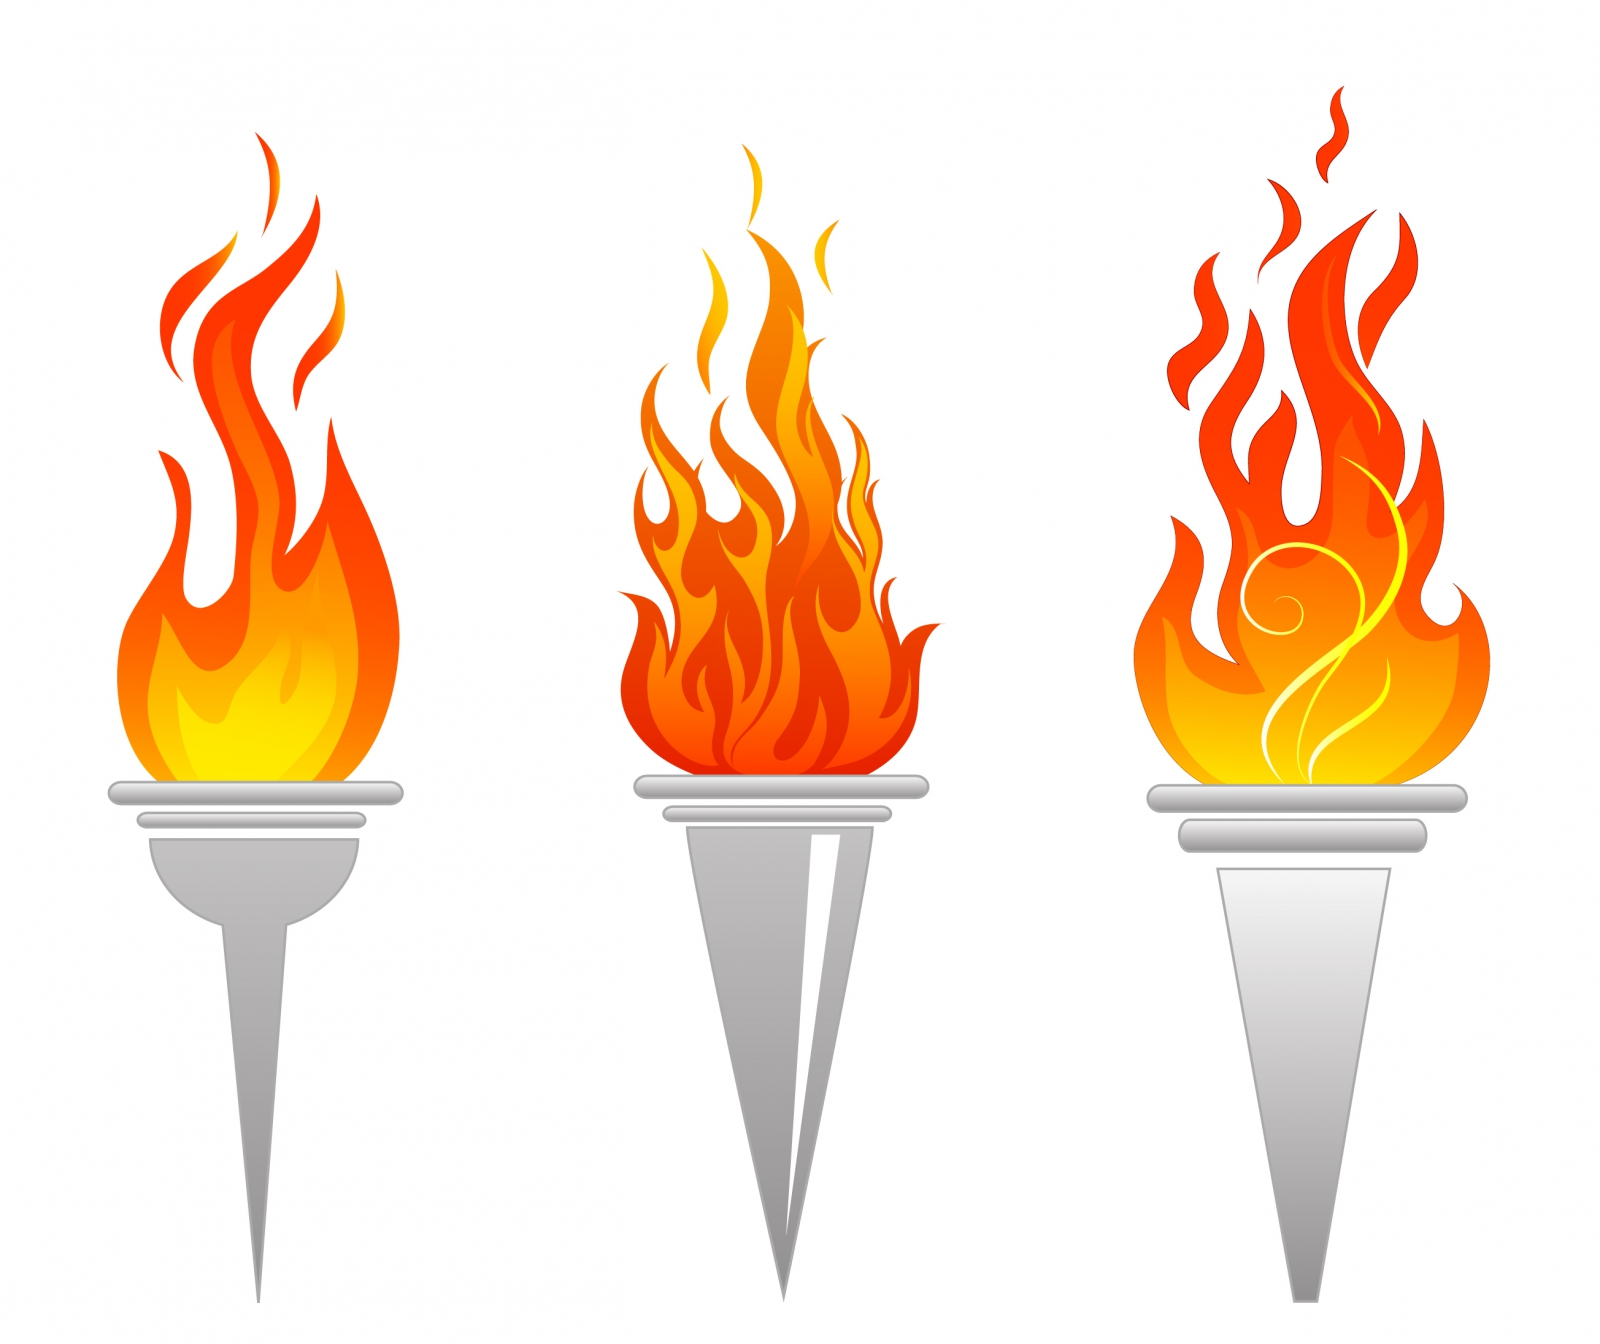 Torch clipart torch flame Vectors · torch art Download